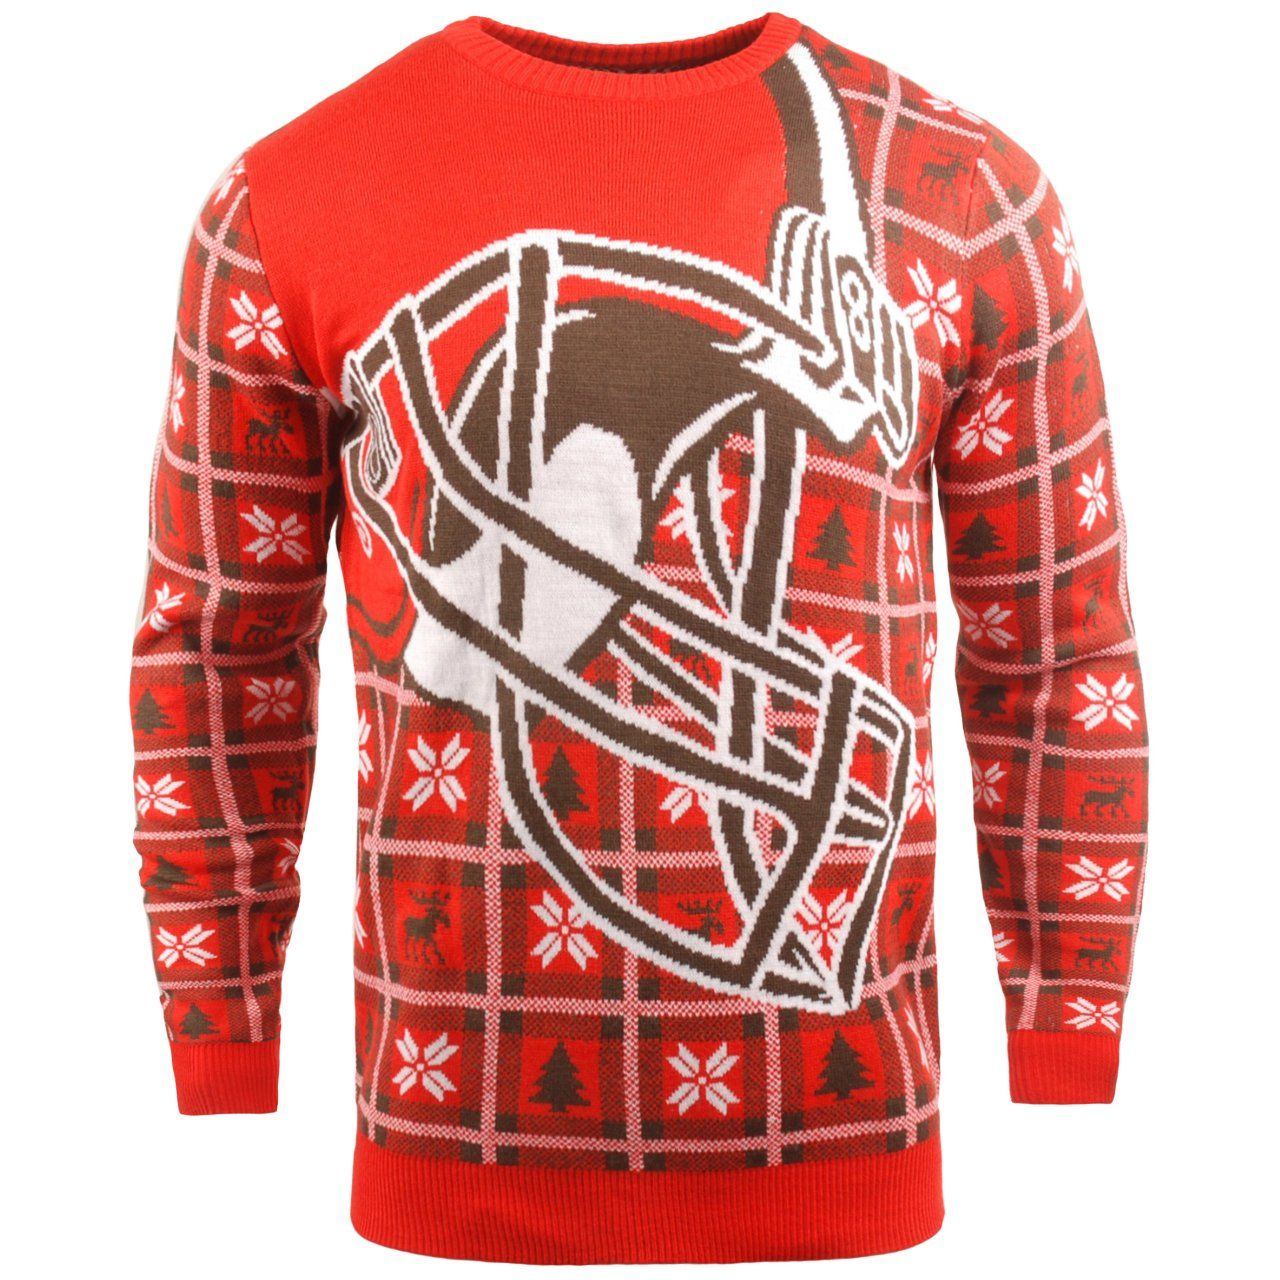 amfoo - NFL Ugly Sweater XMAS Strick Pullover - Cleveland Browns